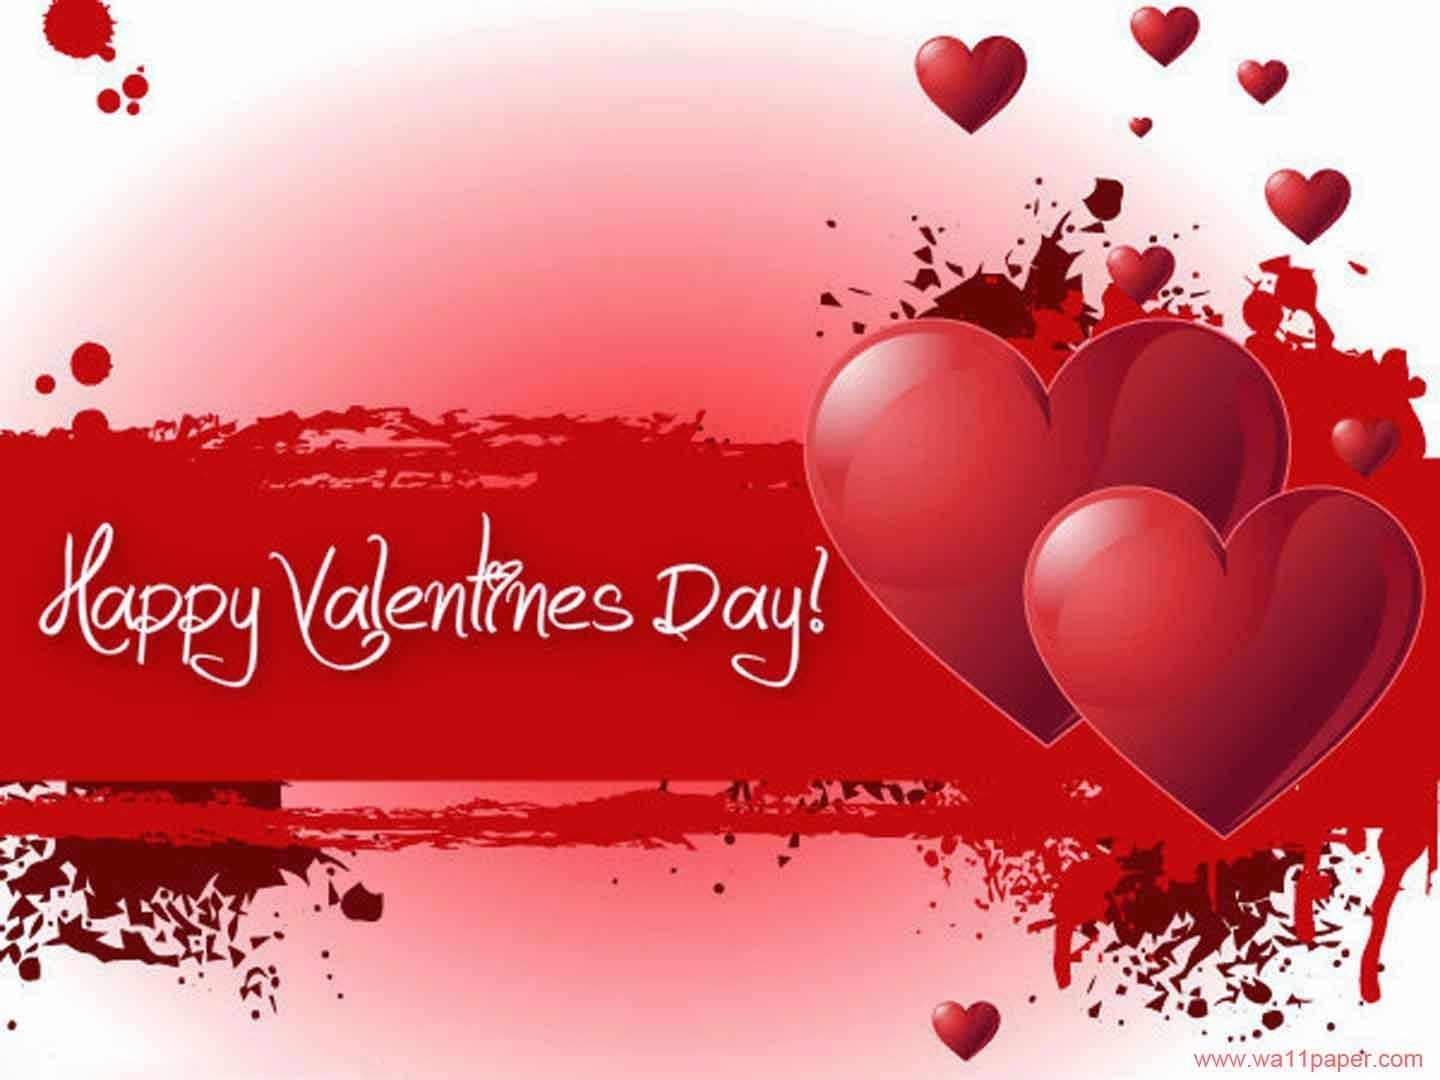 best valentine wishes and sms for your girlfriend - Valentine Wish